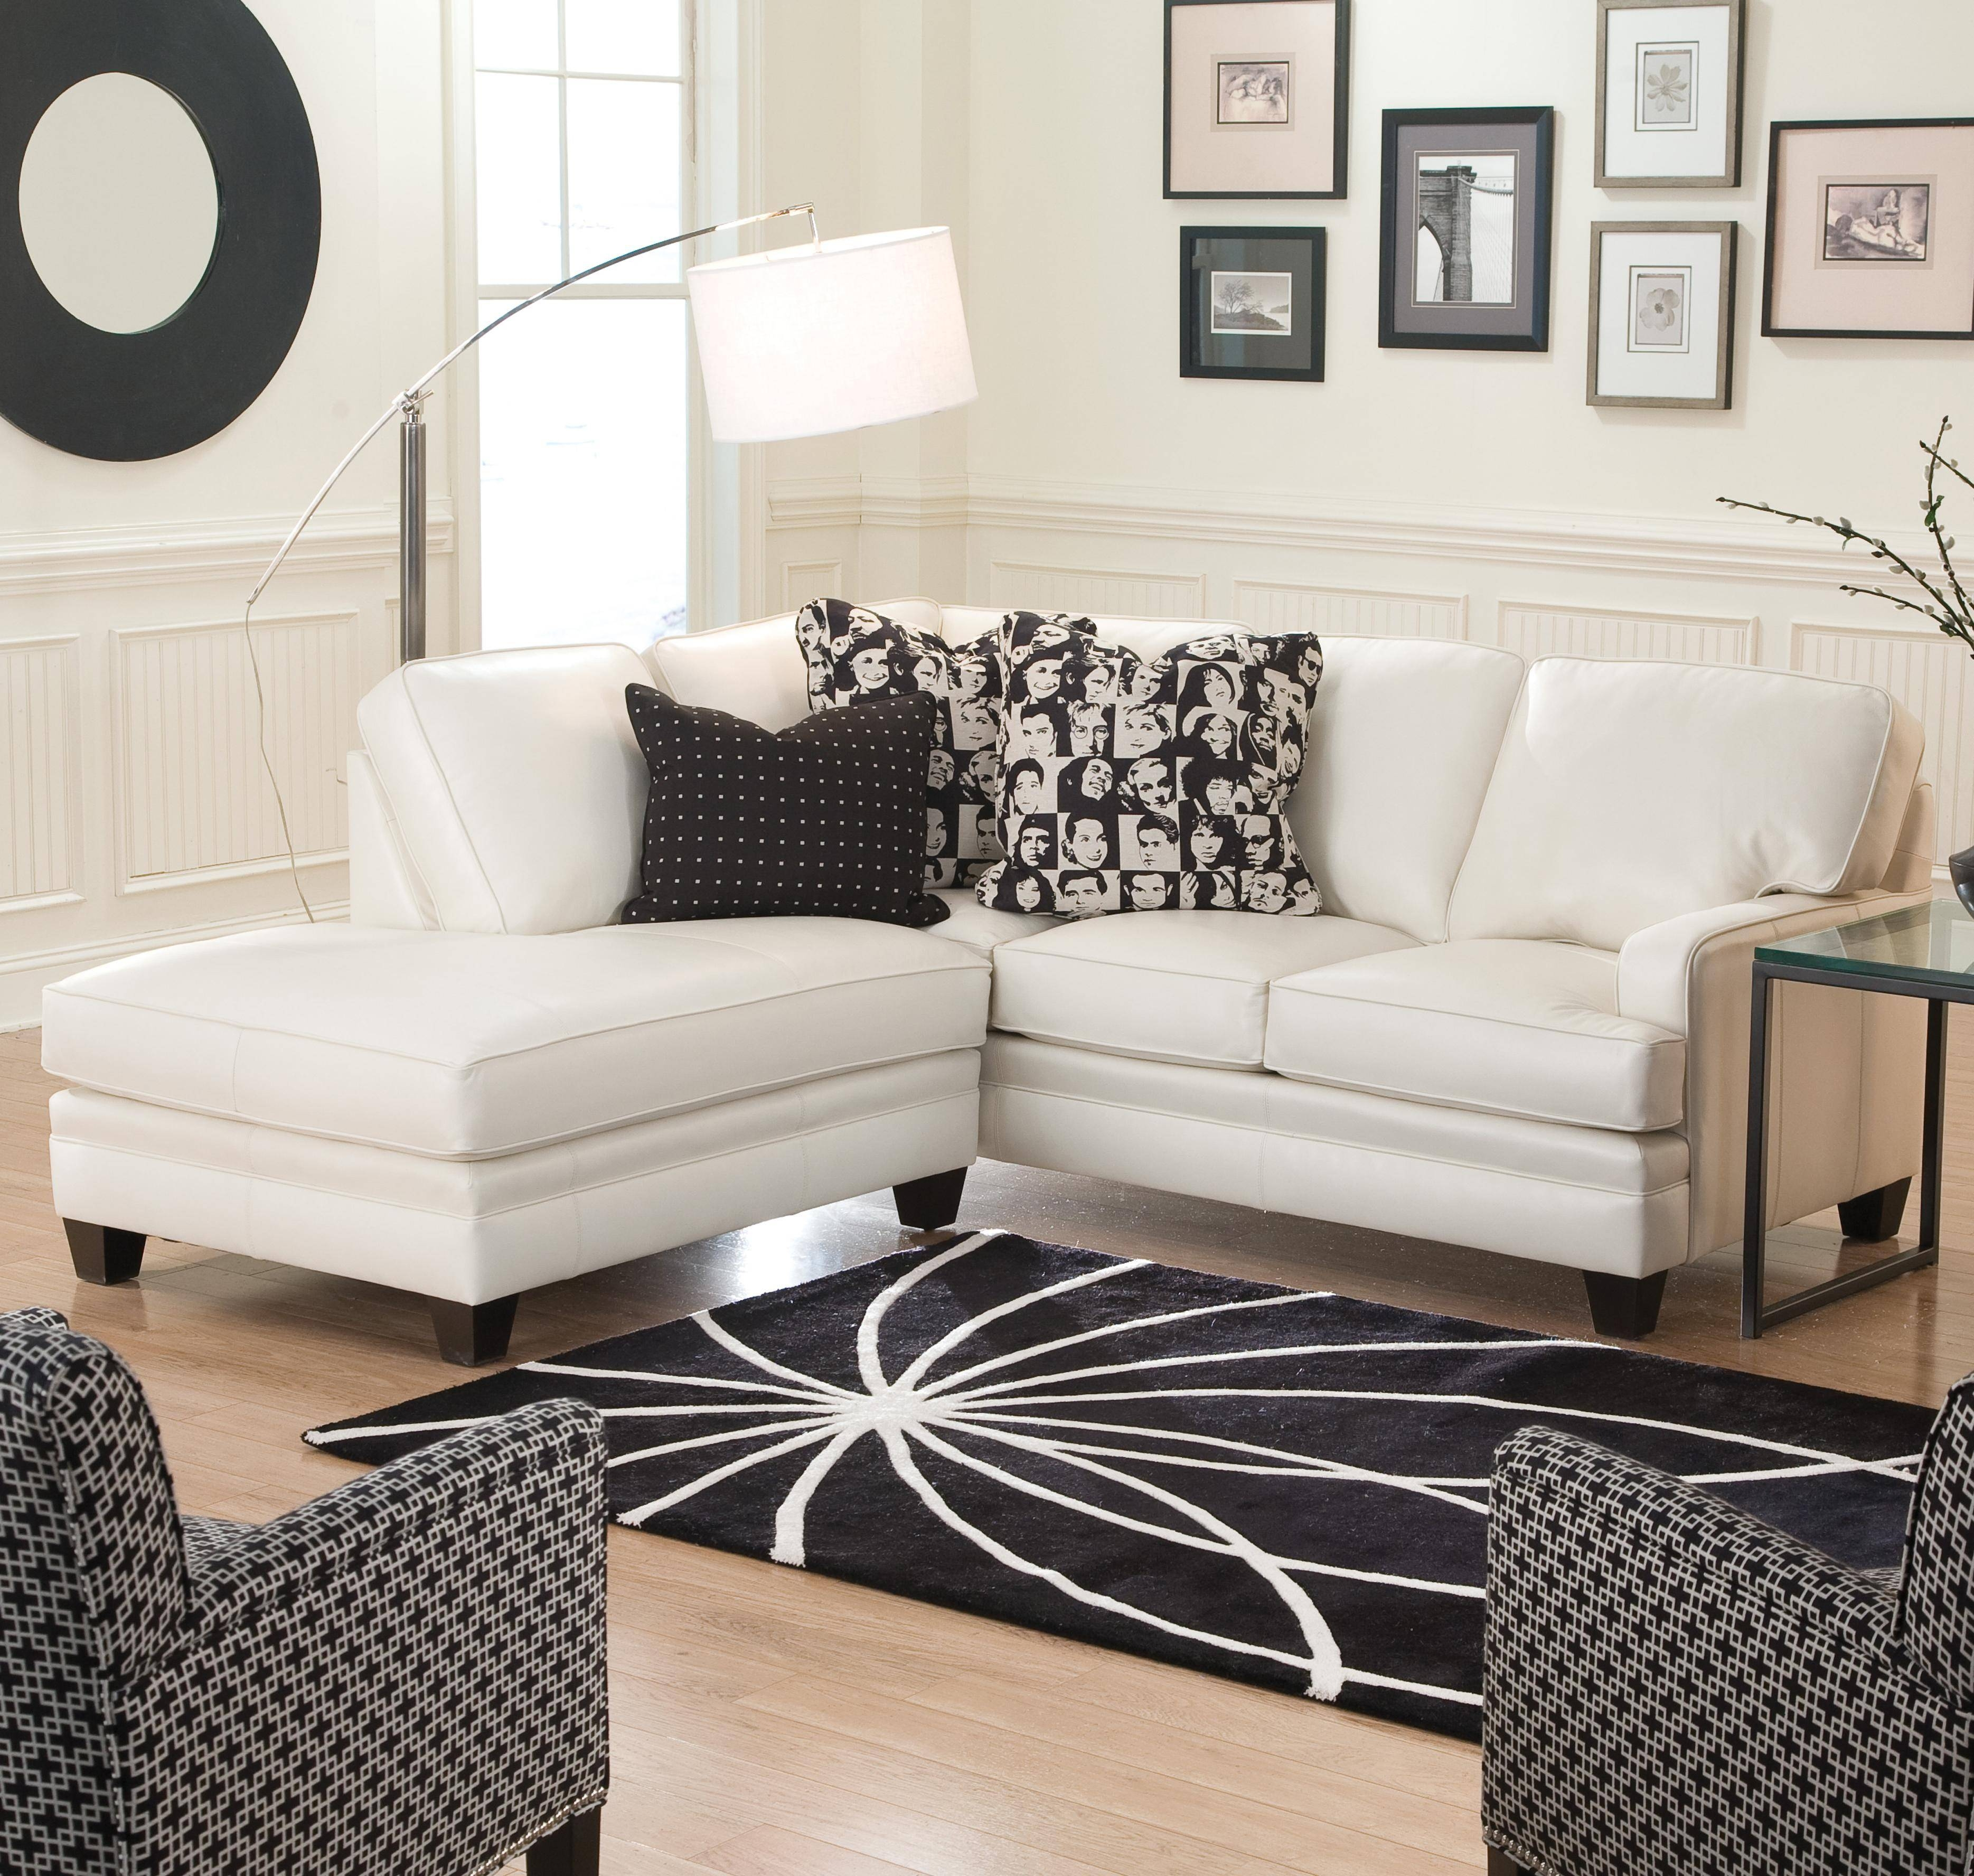 Appealing Small Sectional Sofa For Apartment 58 About Remodel within Small Modular Sectional Sofa (Image 2 of 25)